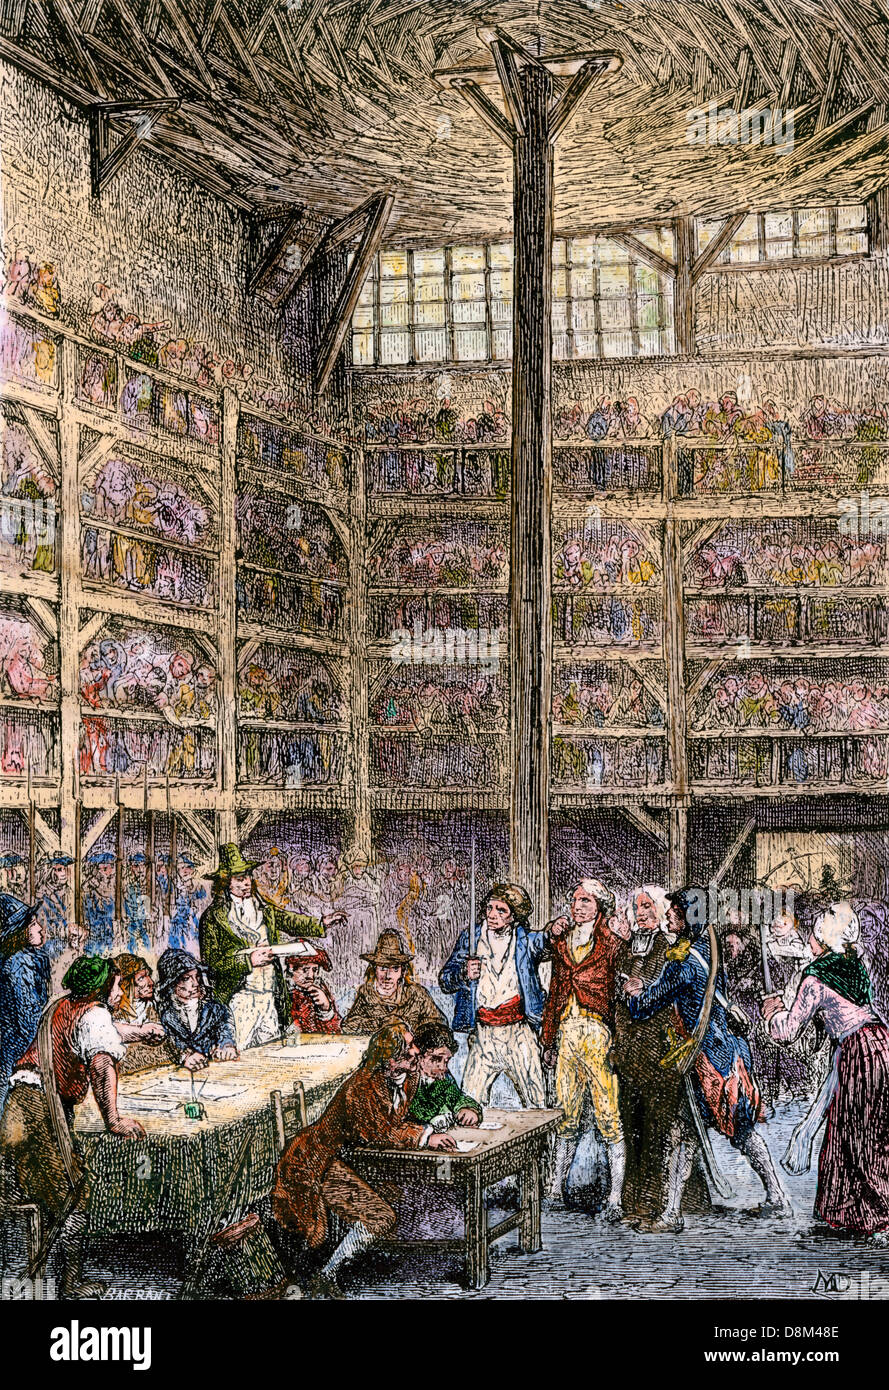 Revolutionary tribunal in the Abbey during the Reign of Terror, French Revolution. Hand-colored woodcut - Stock Image